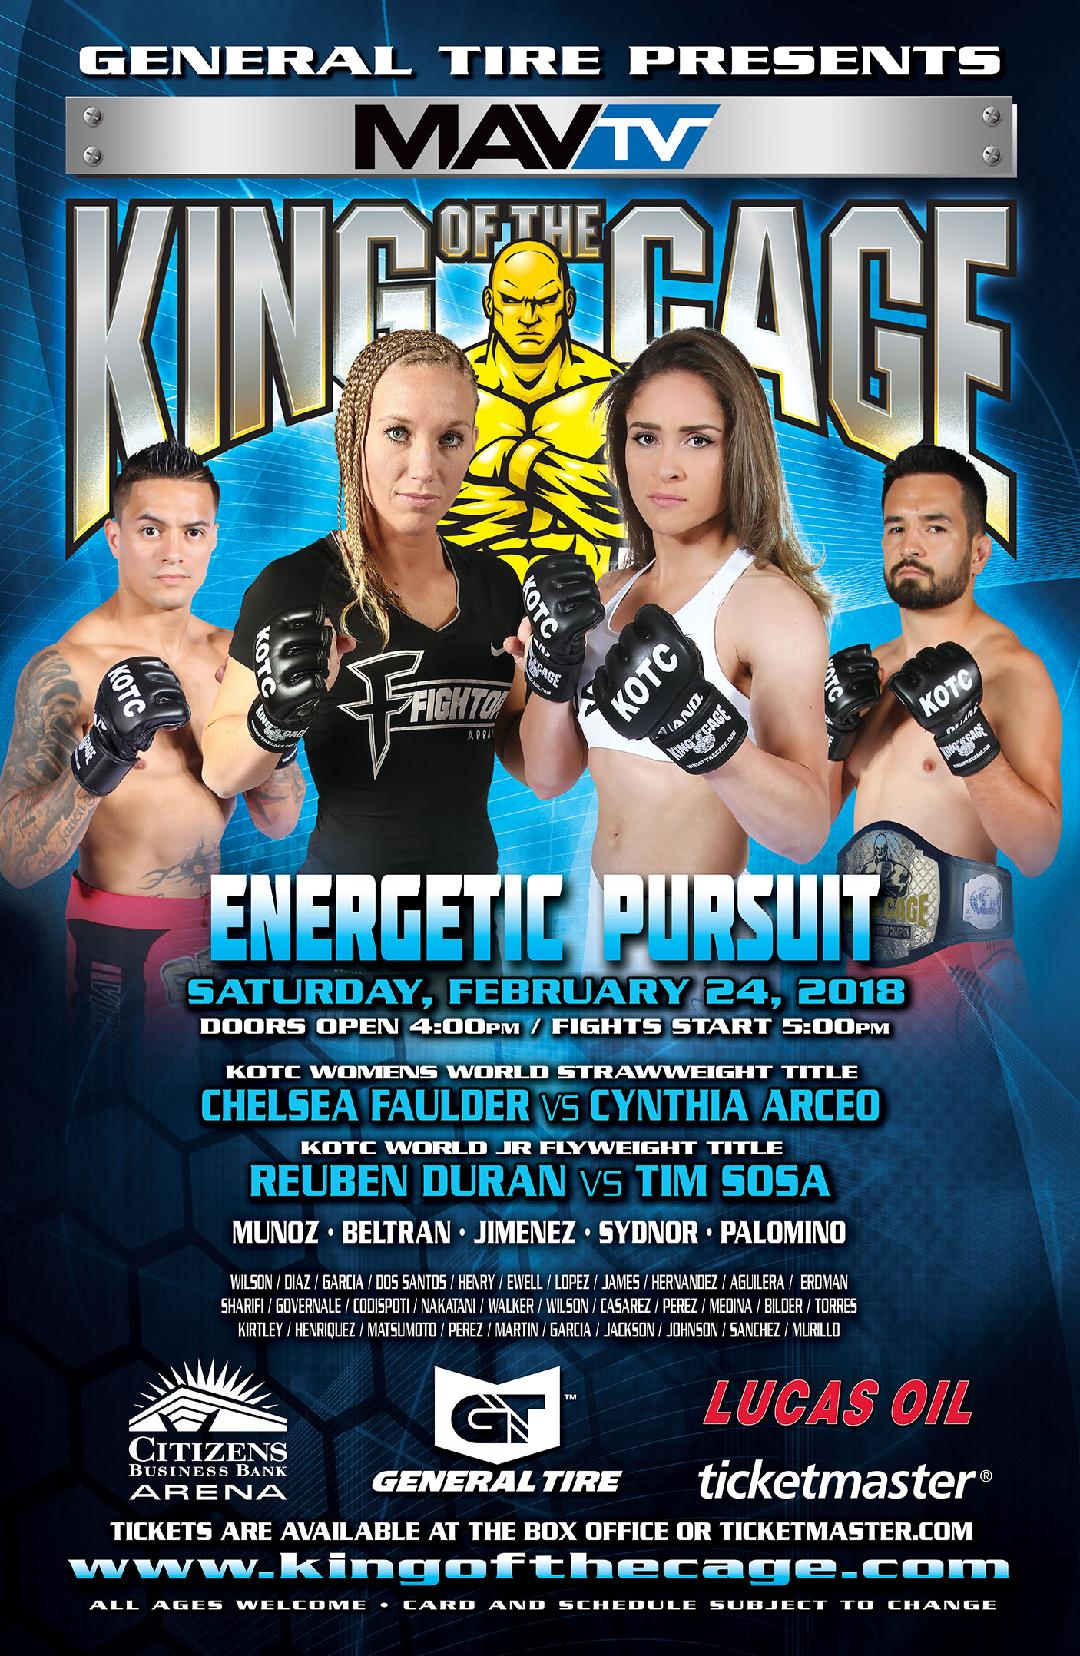 """King of the Cage Returns to Citizens Business Bank Arena on February 24 for """"ENERGETIC PURSUIT"""""""